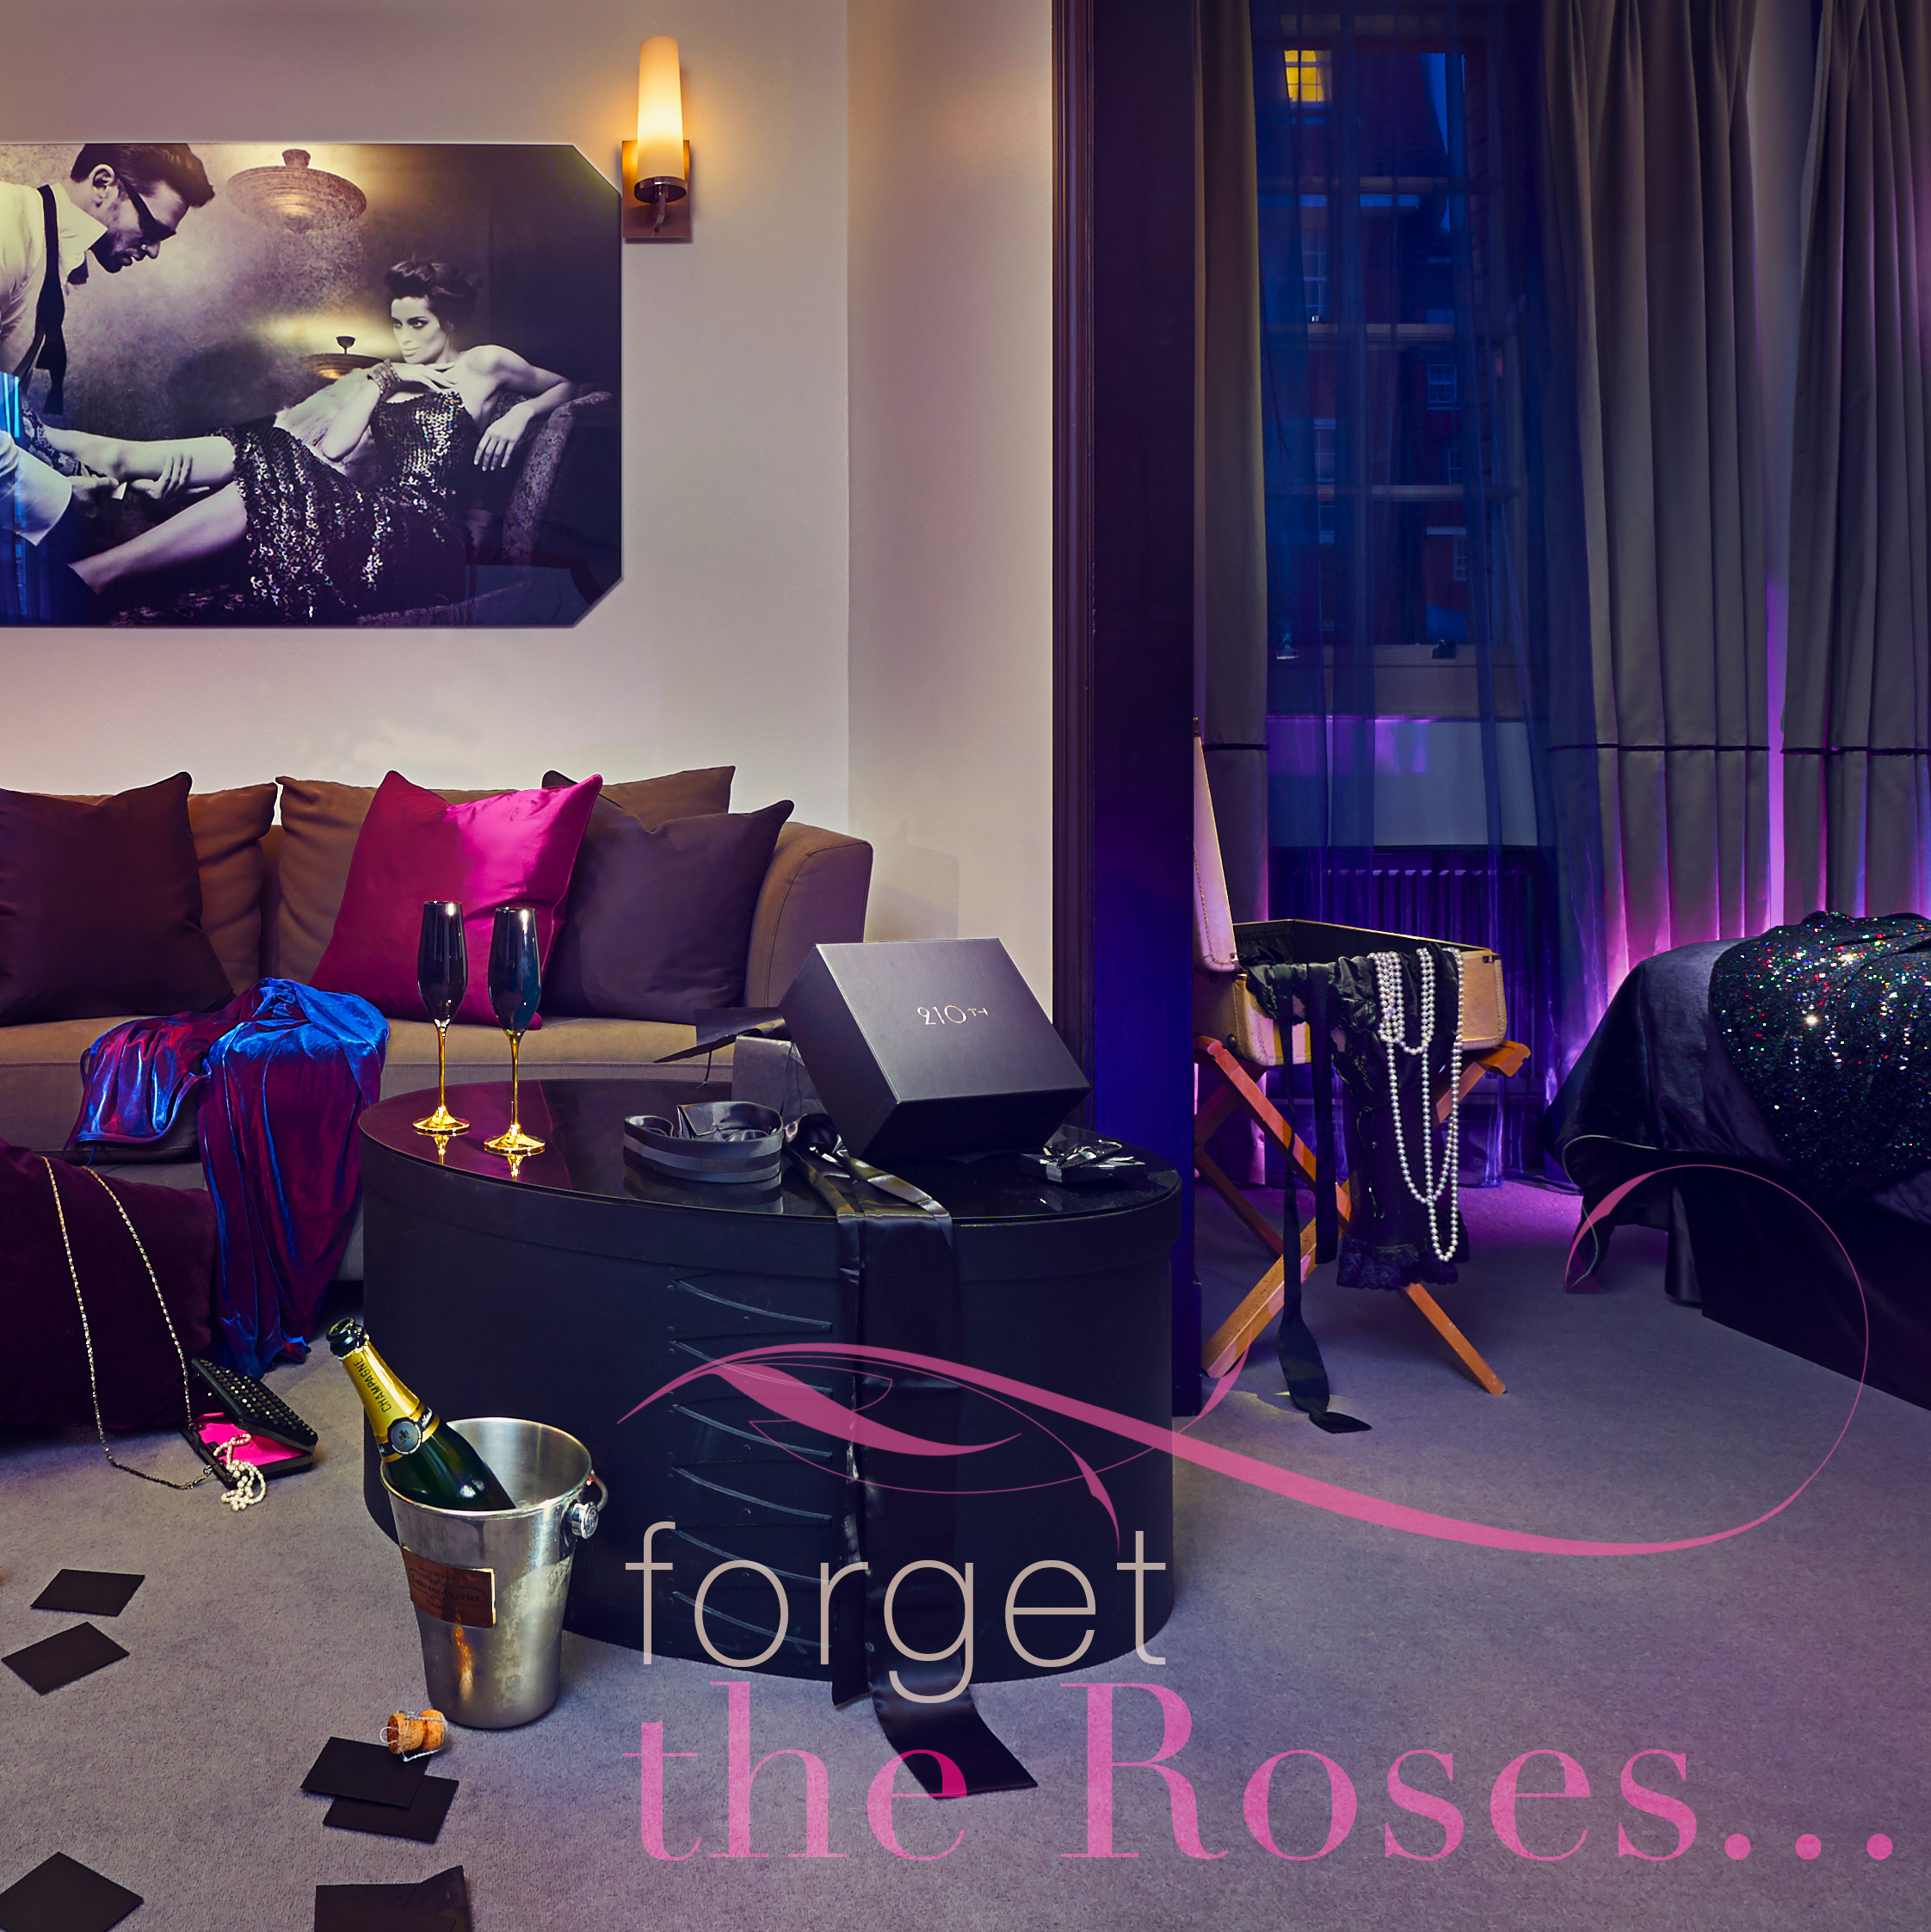 mhg-210_141203_0061__forget-the-roses.jpg